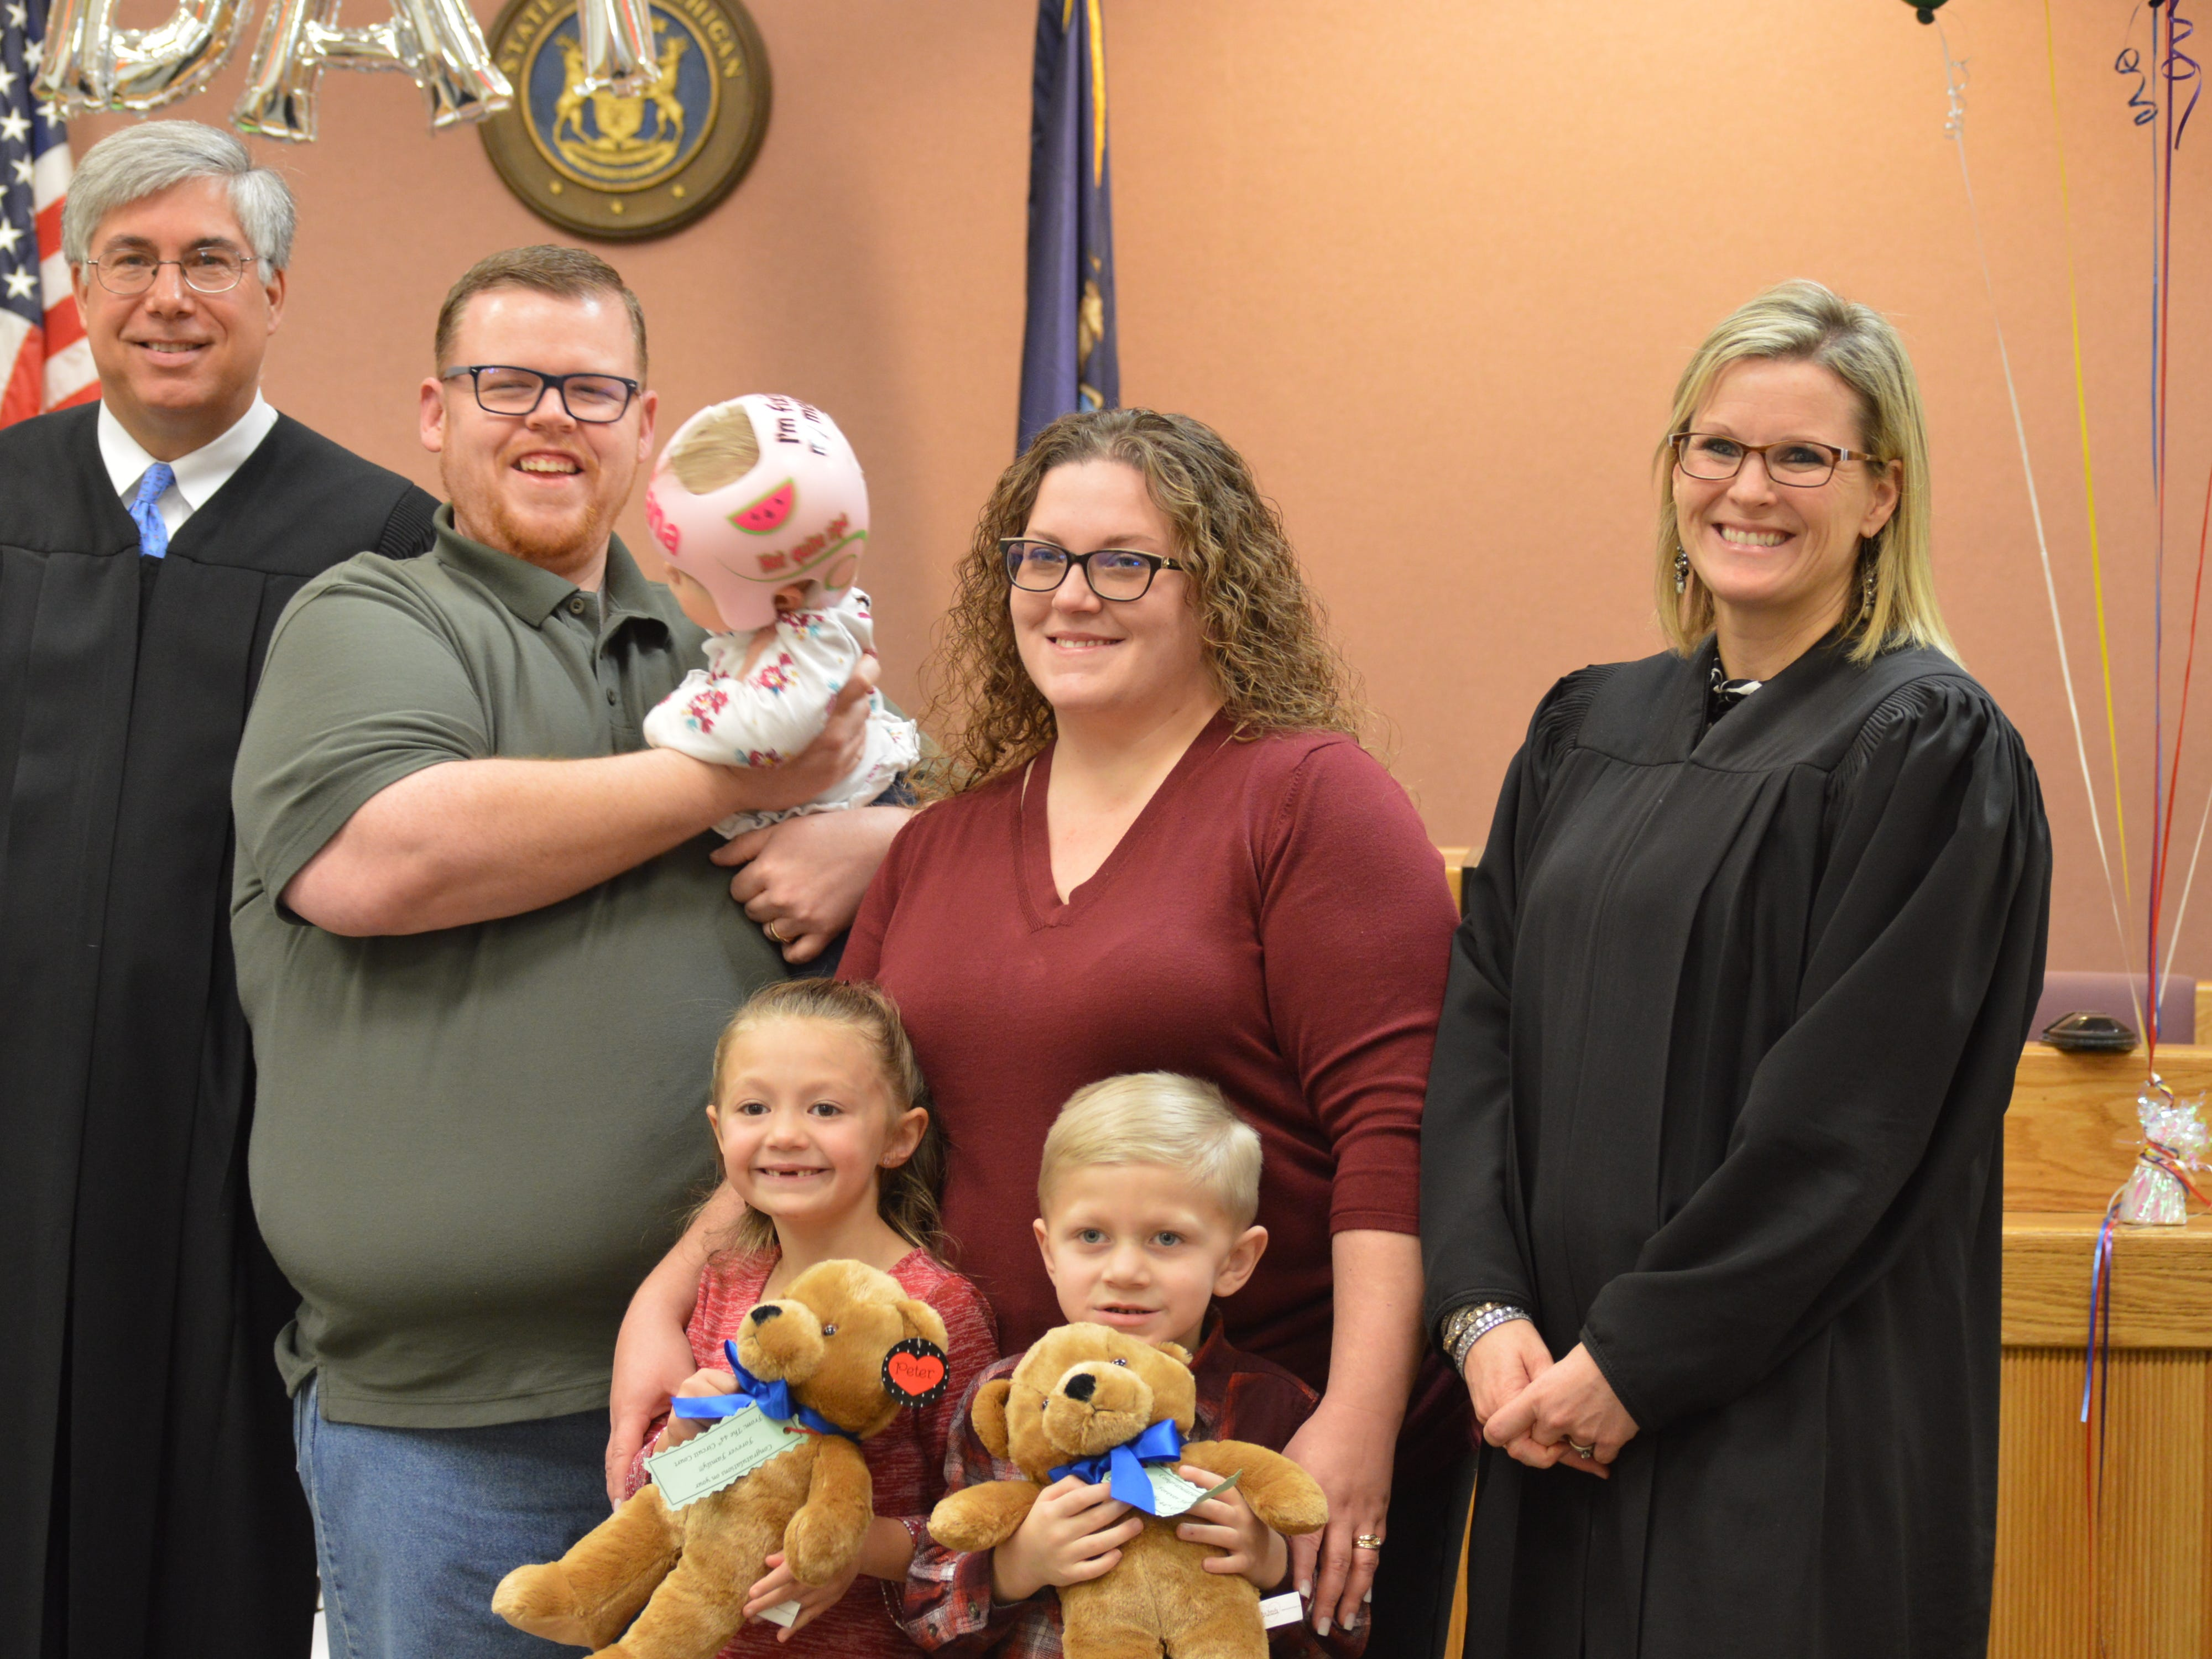 Jeffrey and Erica Poag pose with their two newly adopted children, Angel and Jayden. Livingston County Chief Judge Miriam Cavanaugh and Court of Appeals Judge Christopher Murray finalized adoption on Tuesday Nov. 20, 2018.